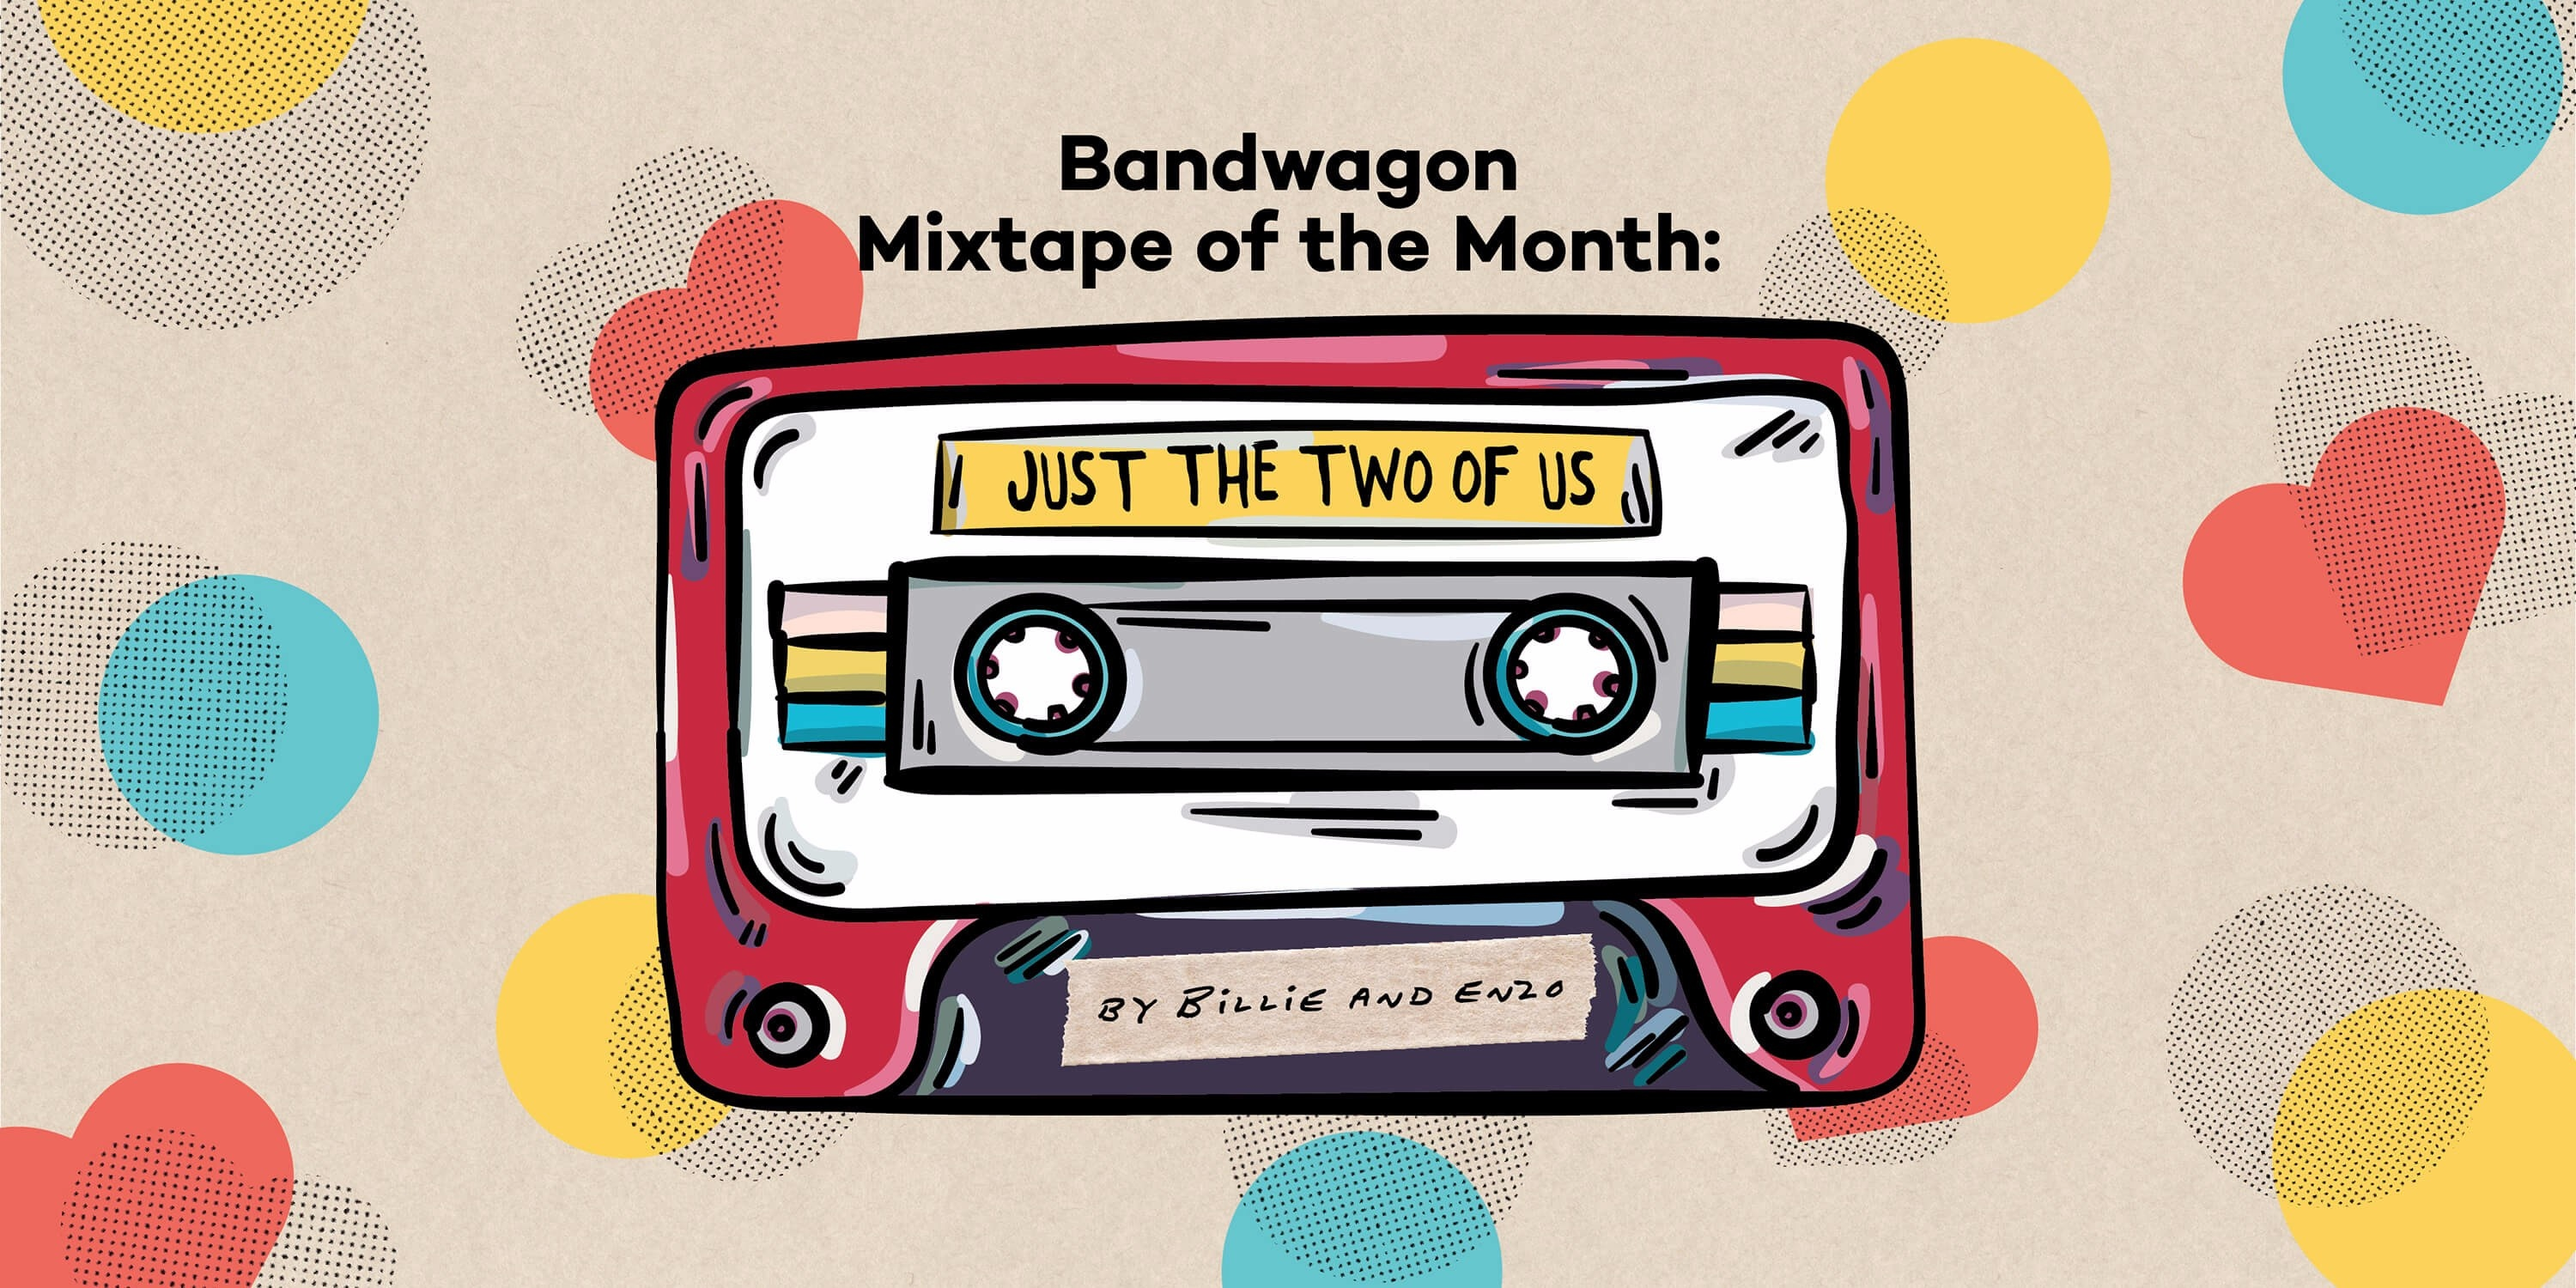 Bandwagon Mixtape of the Month #2: Just the Two of Us by Billie and Enzo